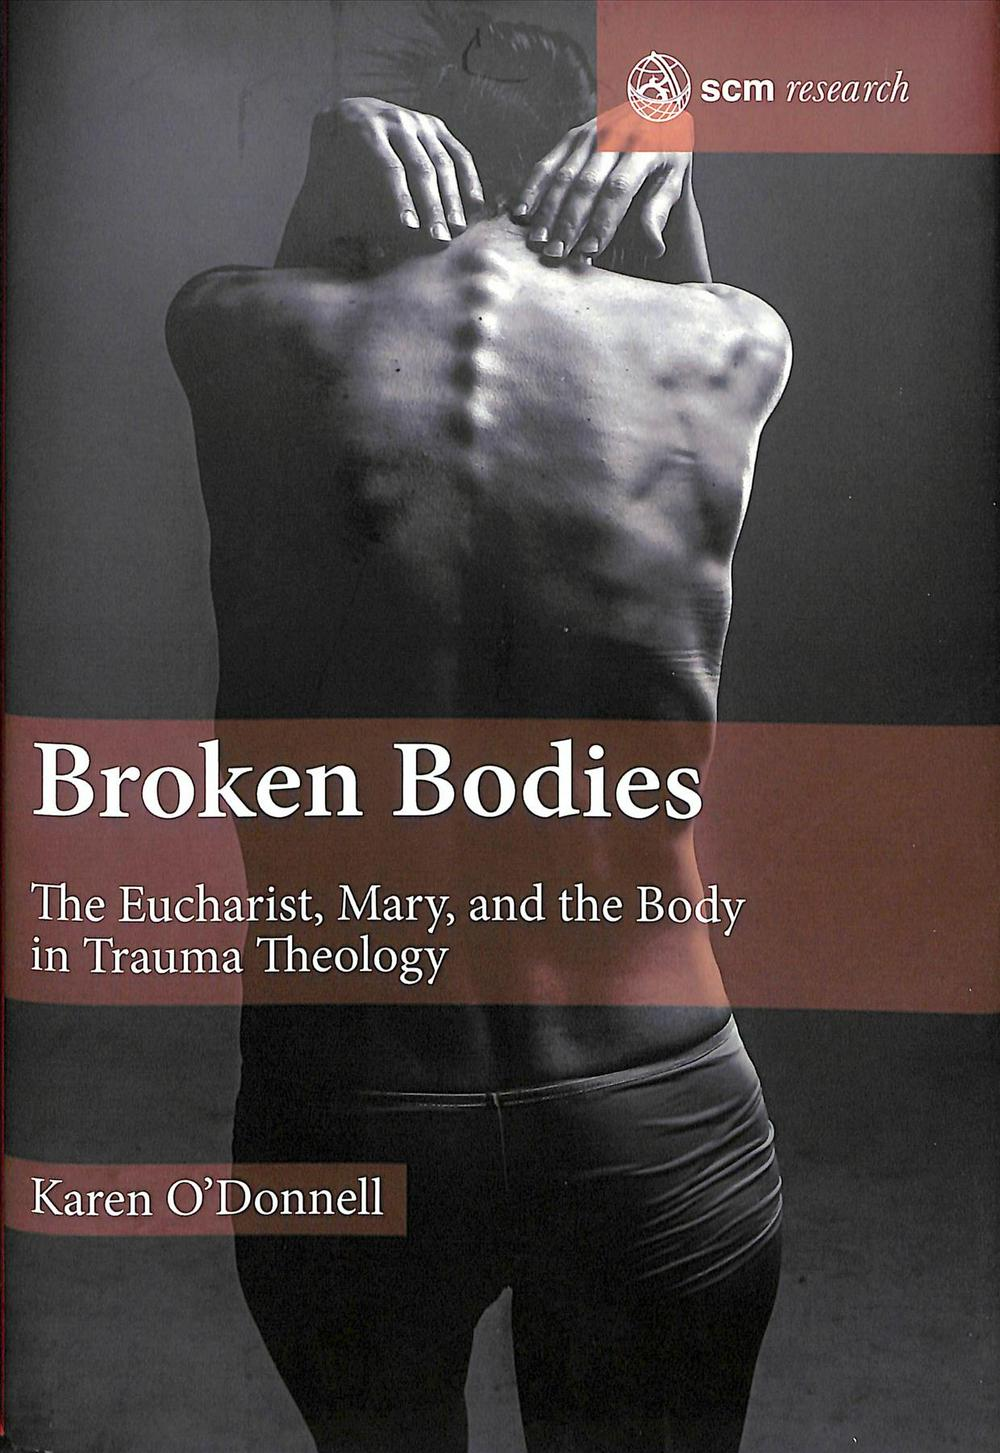 Broken BodiesThe Eucharist, Mary and the Body in Trauma Theo... by Karen O'Donnell, ISBN: 9780334056249